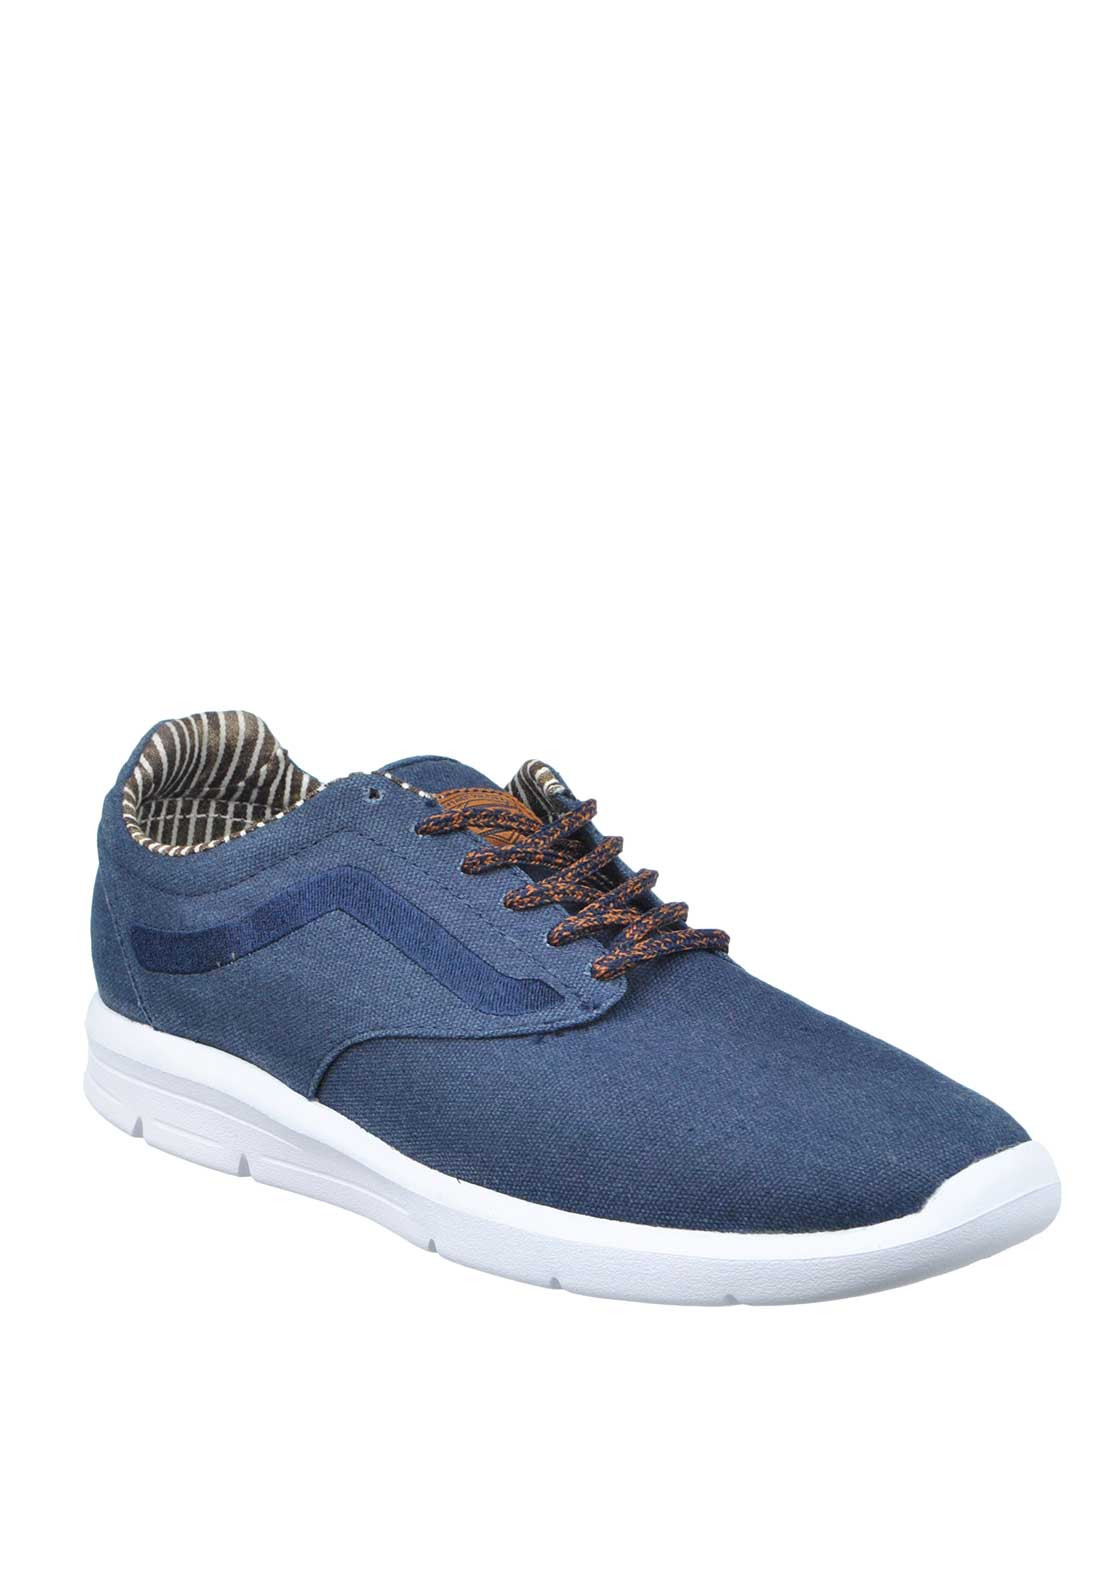 Vans Mens Waxed C&L Iso Lace Up Trainer, Navy